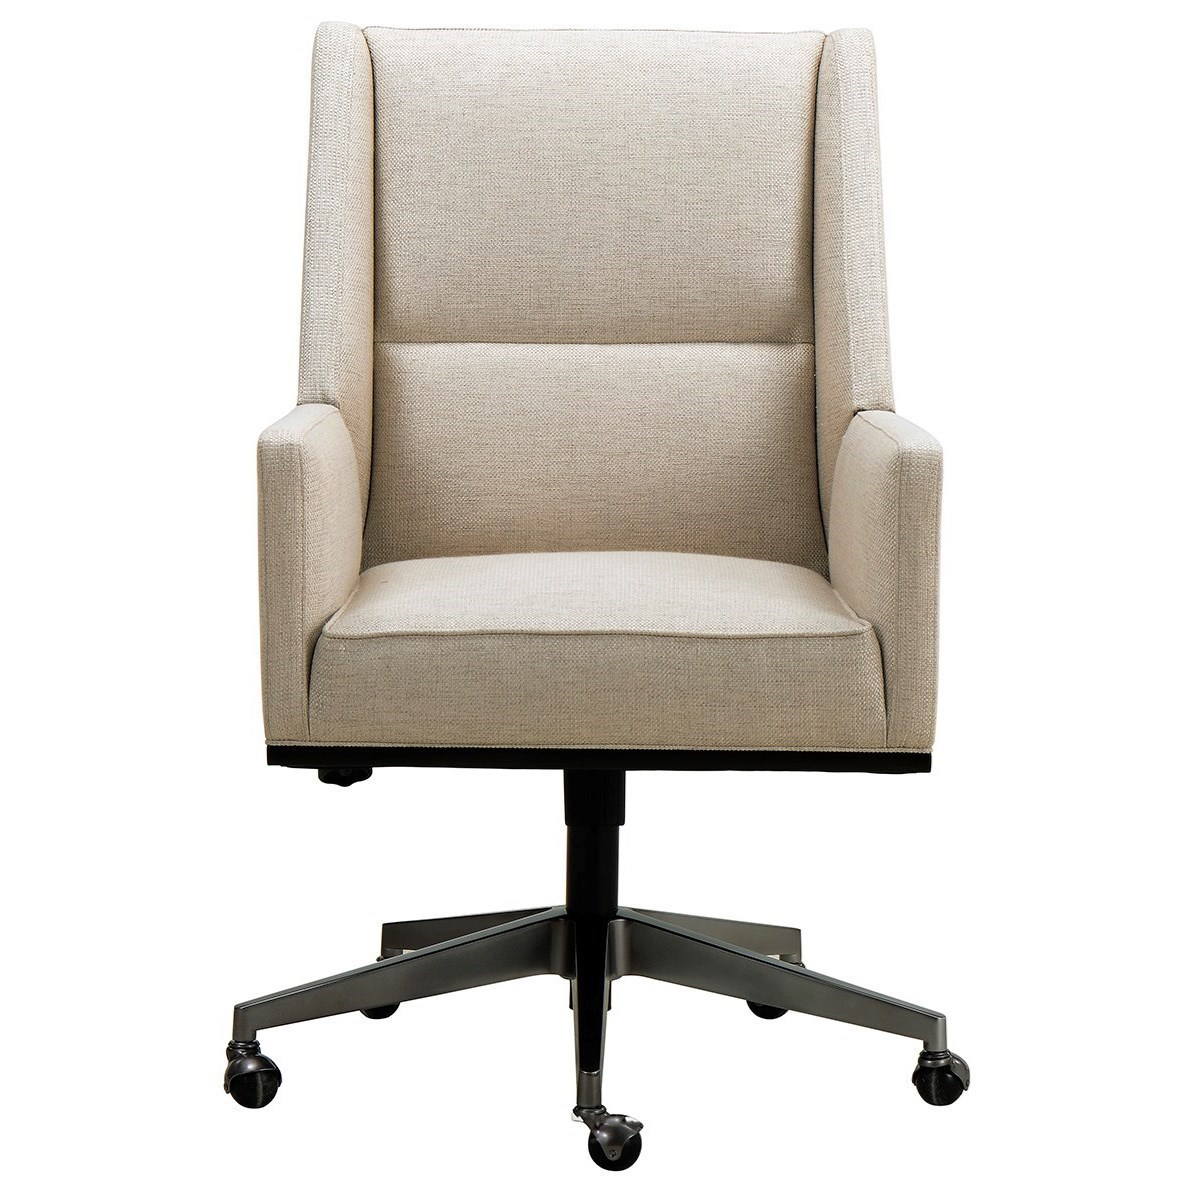 A.R.T. Furniture Inc Prossimo Contemporary Upholstered Desk Chair With  Casters | Boulevard Home Furnishings | Executive Desk Chairs